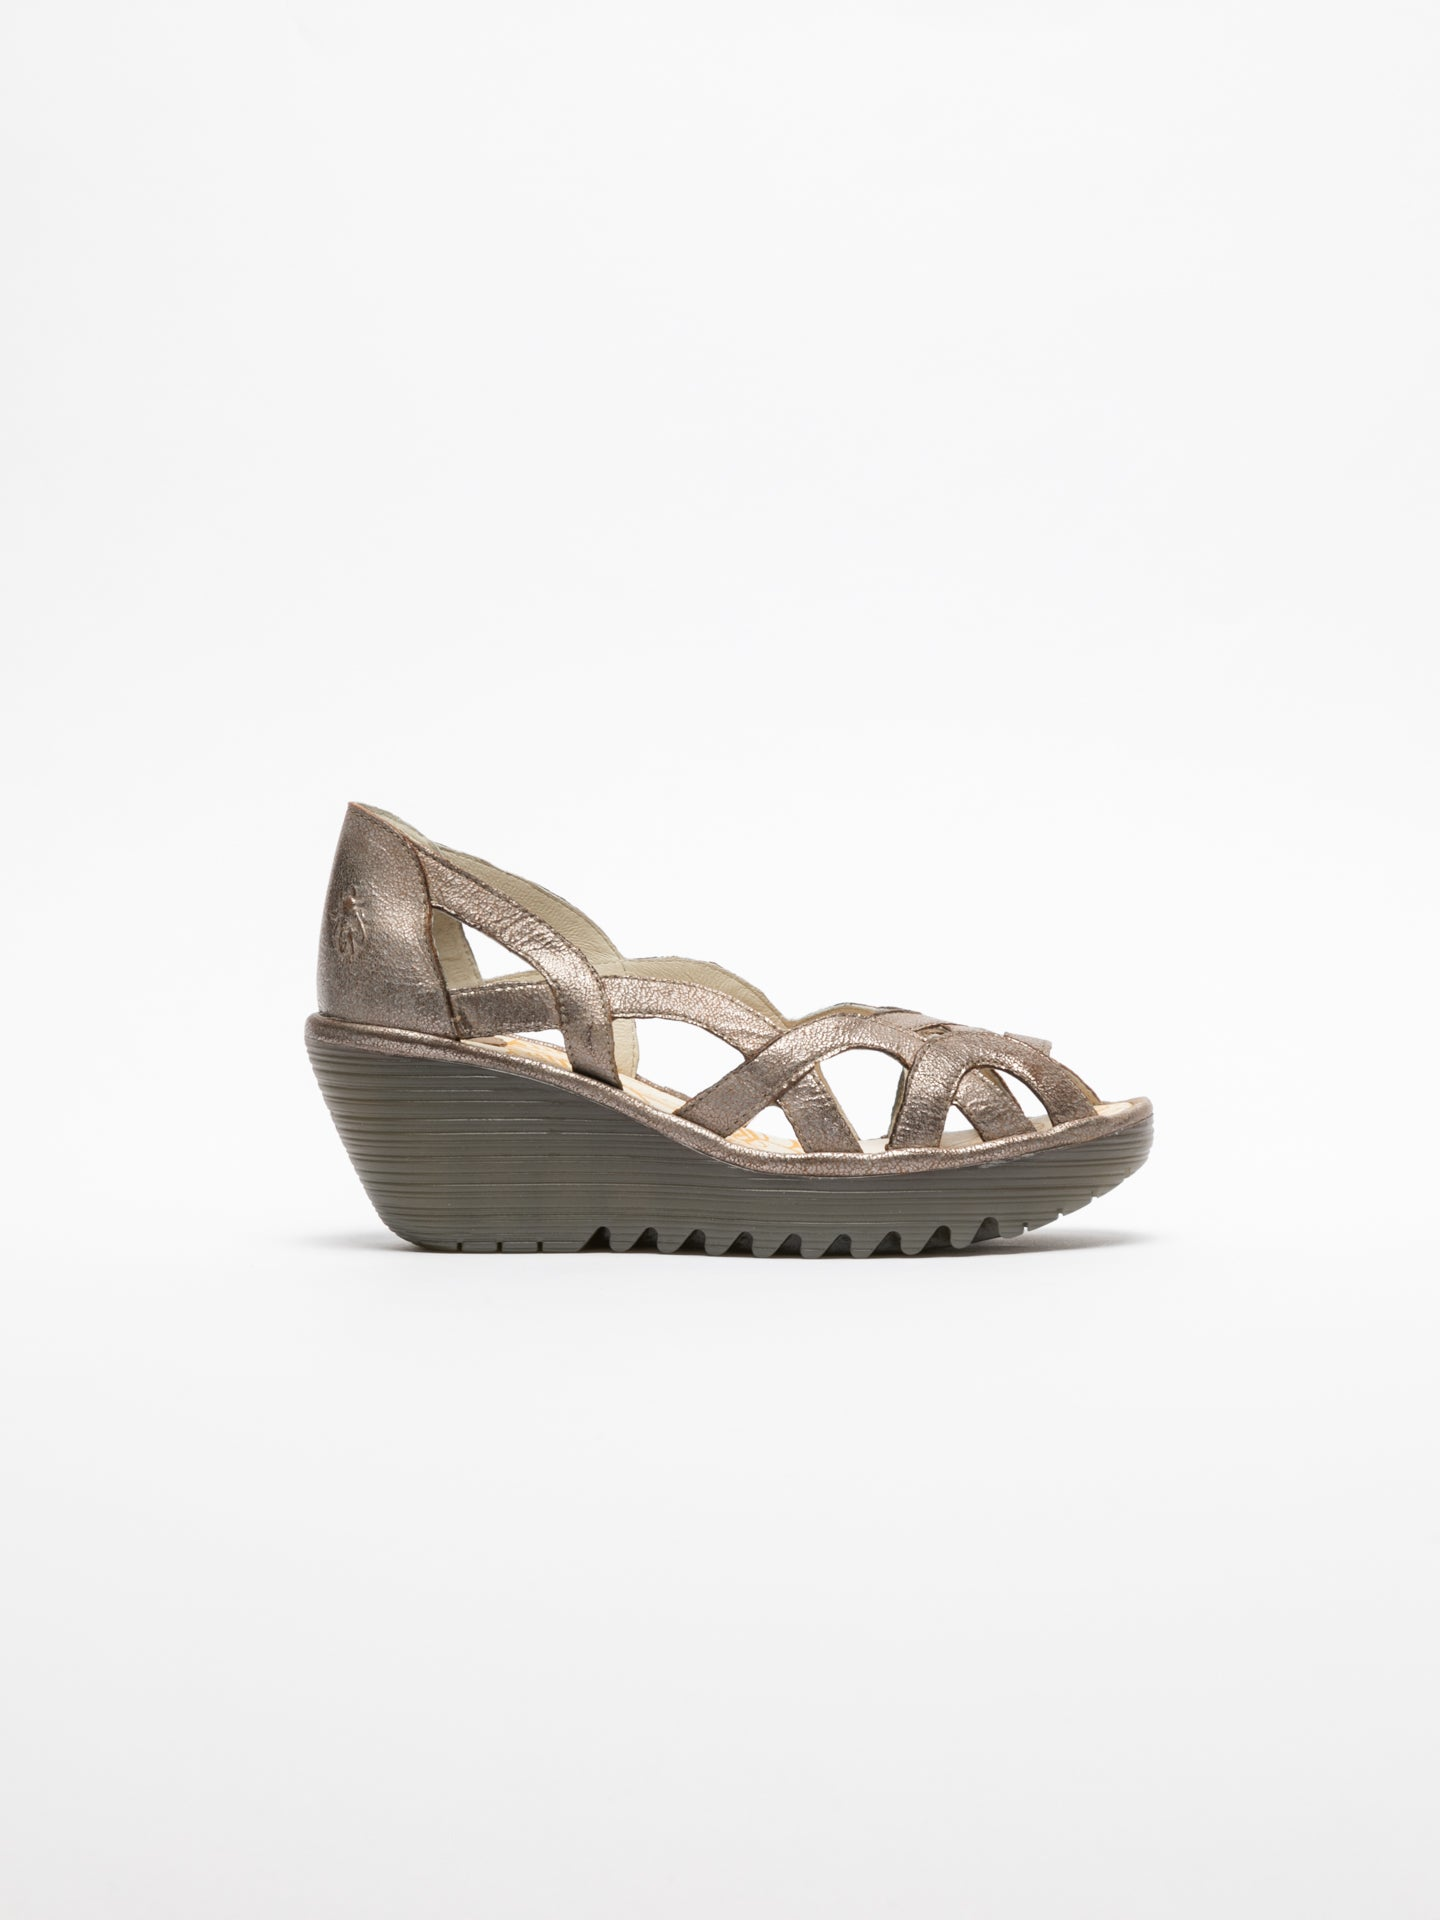 Fly London Peru Wedge Sandals